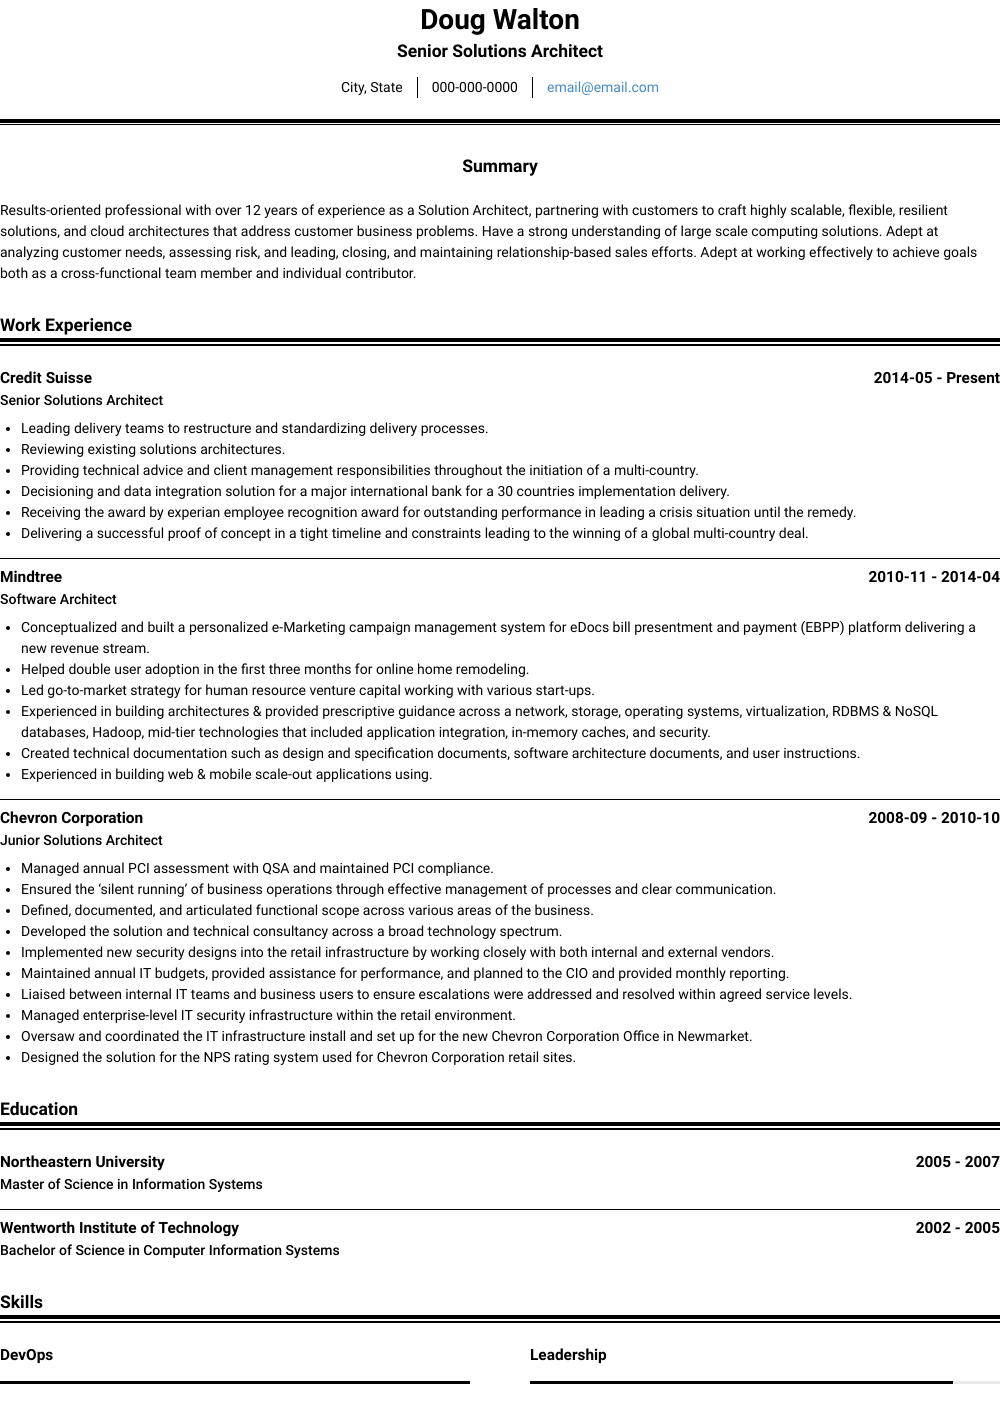 Senior Solutions Architect Resume Sample and Template